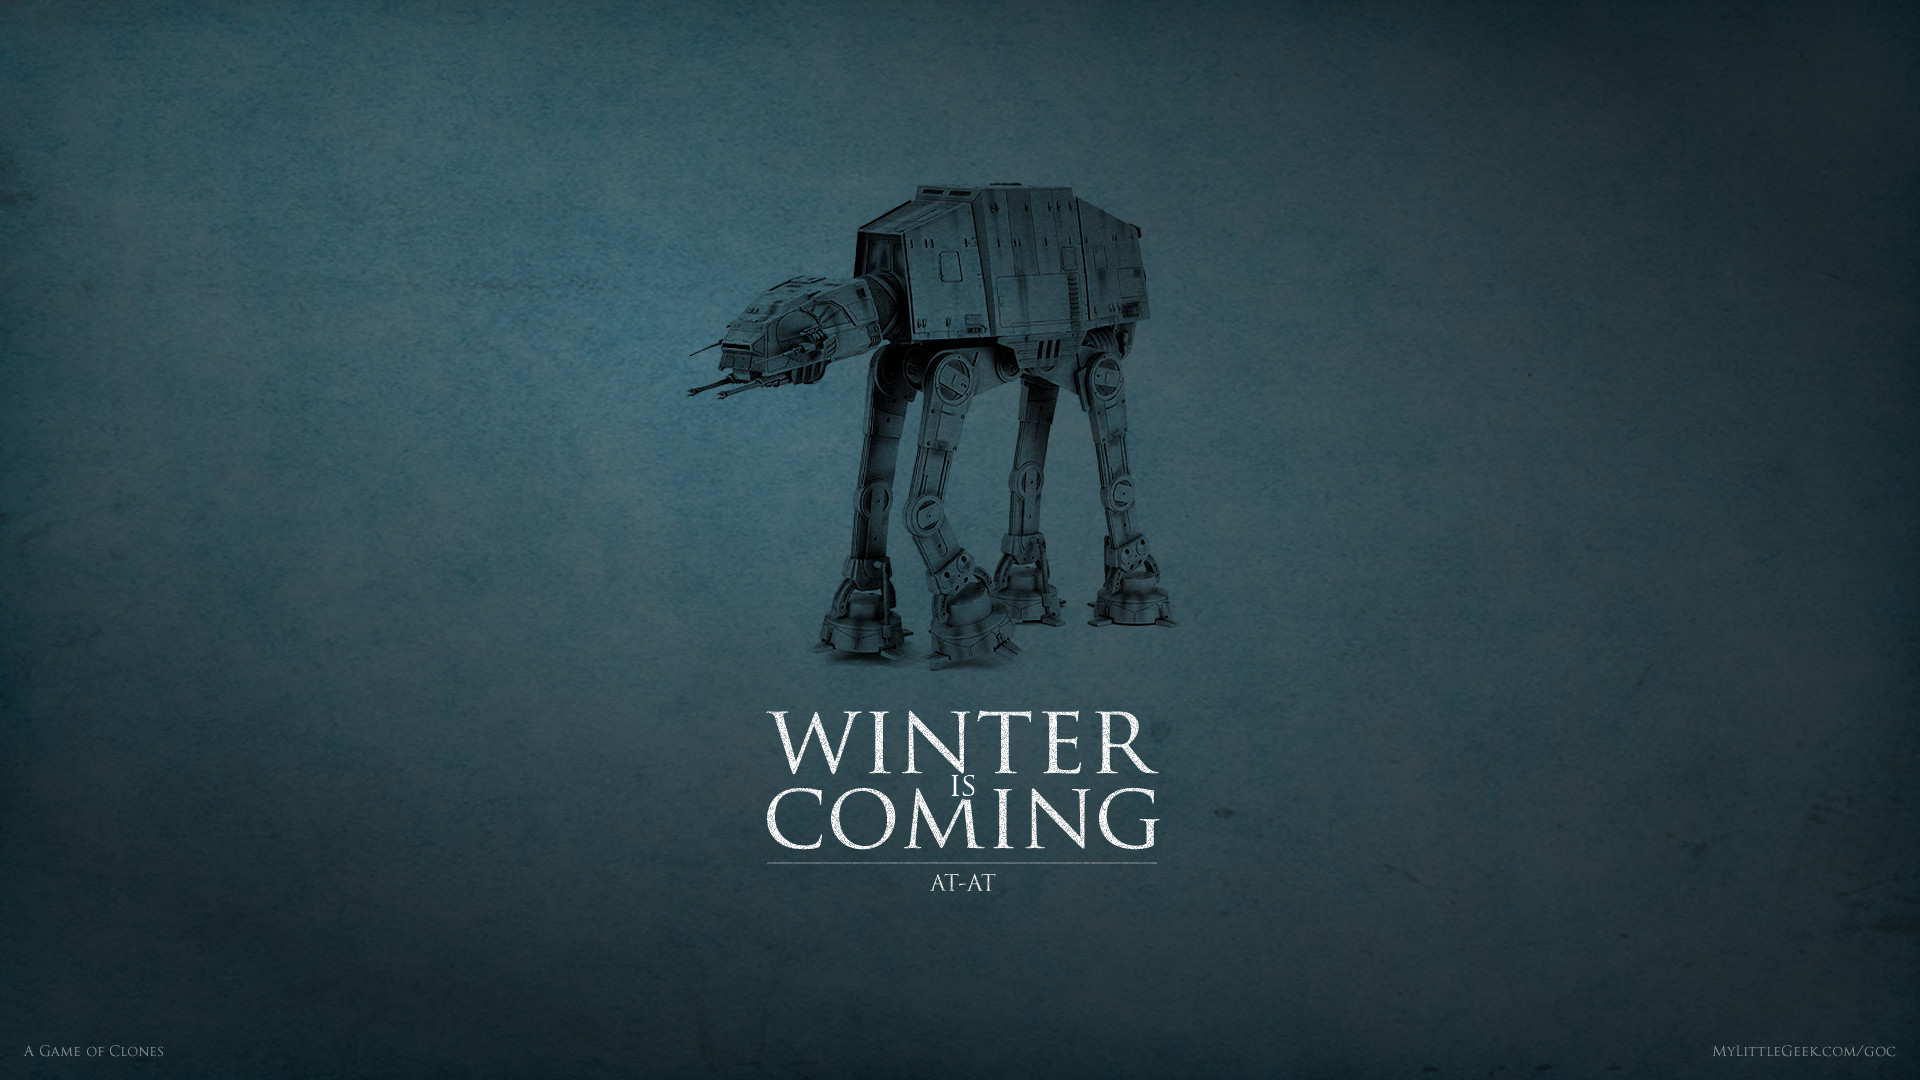 1920x1080 Winter is Coming: AT-AT